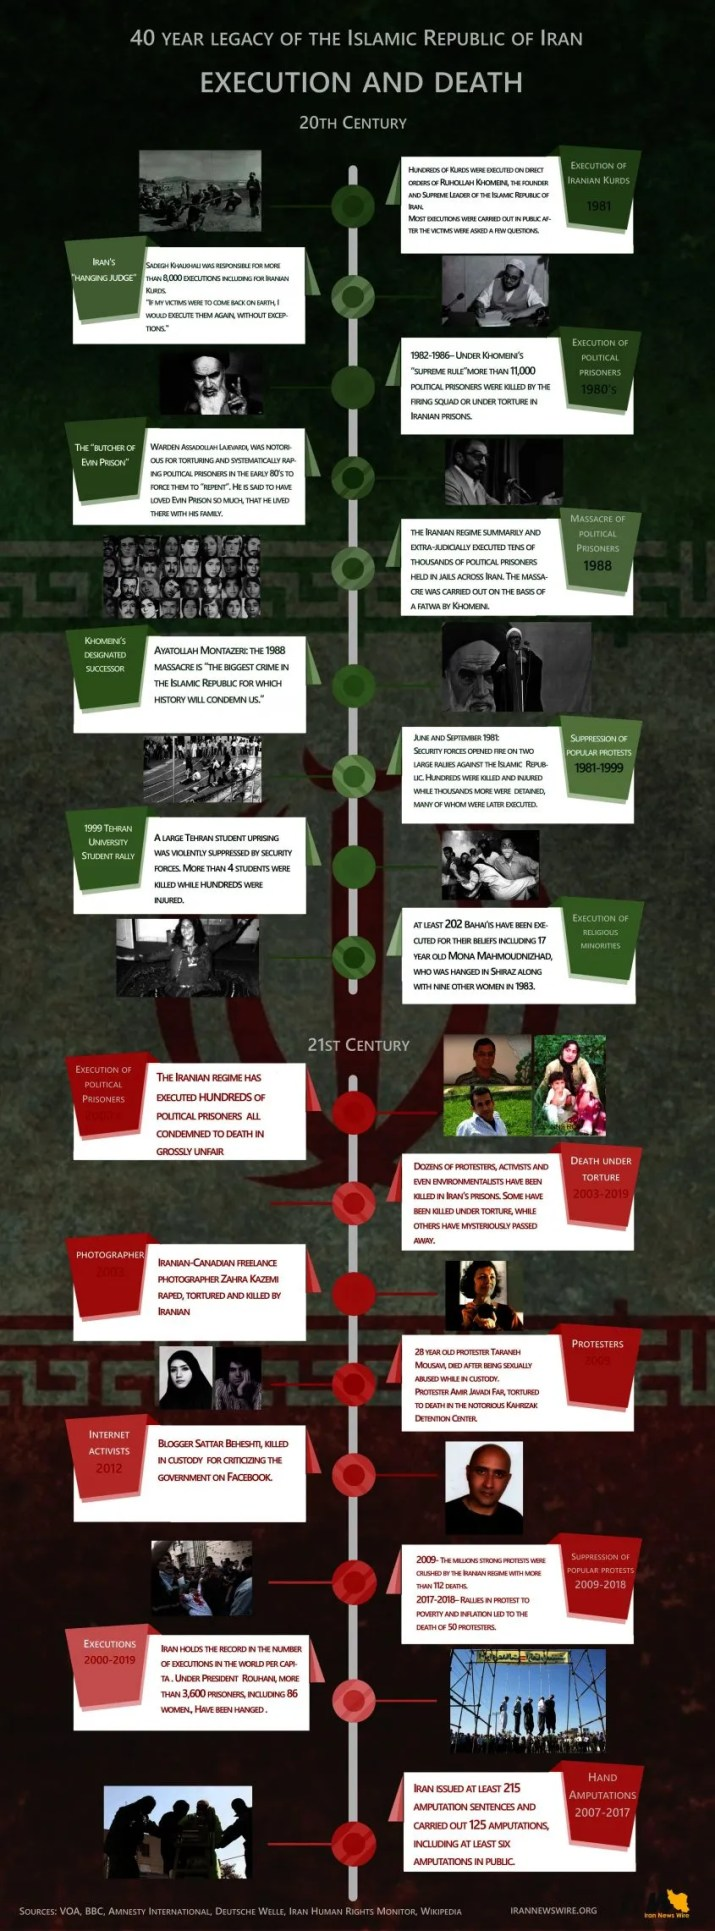 40 Year Legacy of the Islamic Republic of Iran - Death and Execution